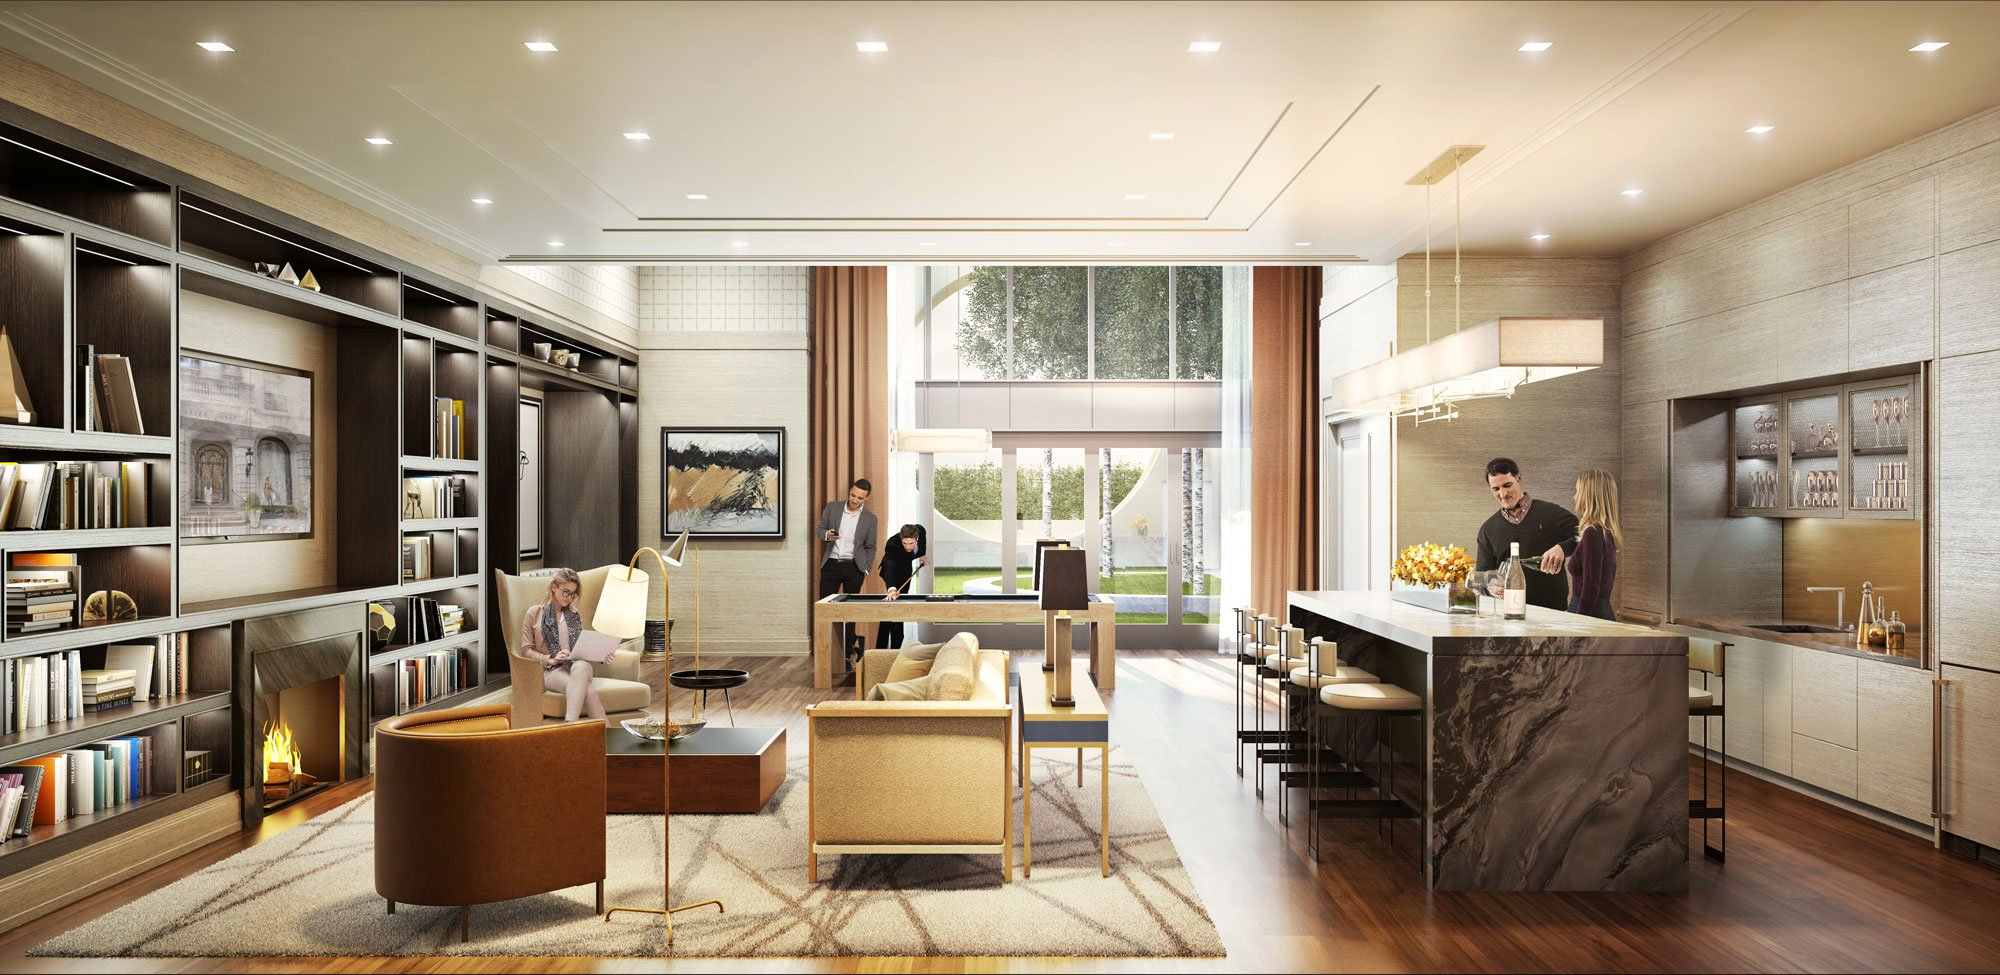 Upper east side penthouses for sale panoramic views from for Upper east side manhattan apartments for sale